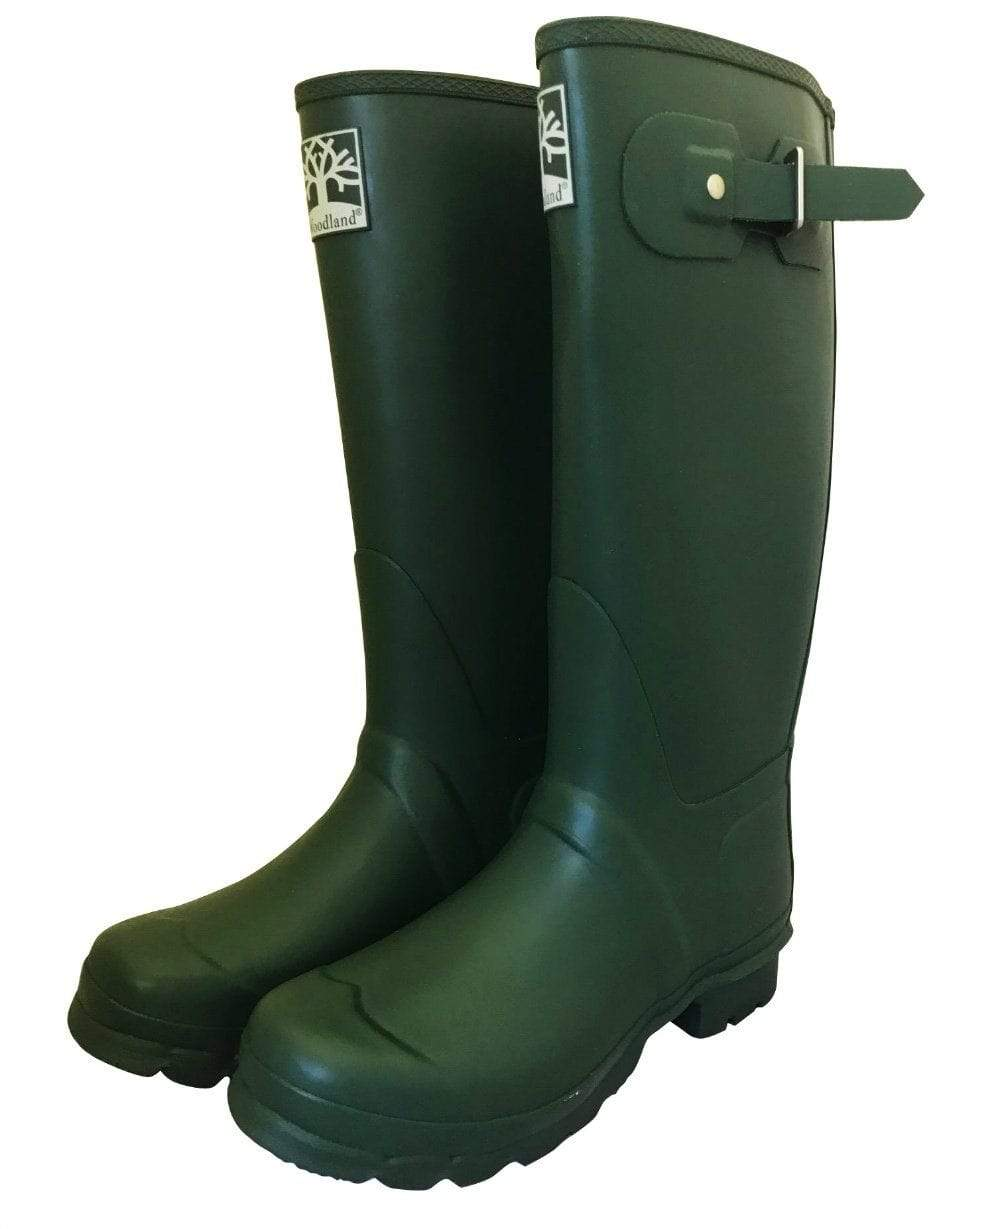 Durable Green Country Wellies by Woodlands - Wide Calf Wellies for Women